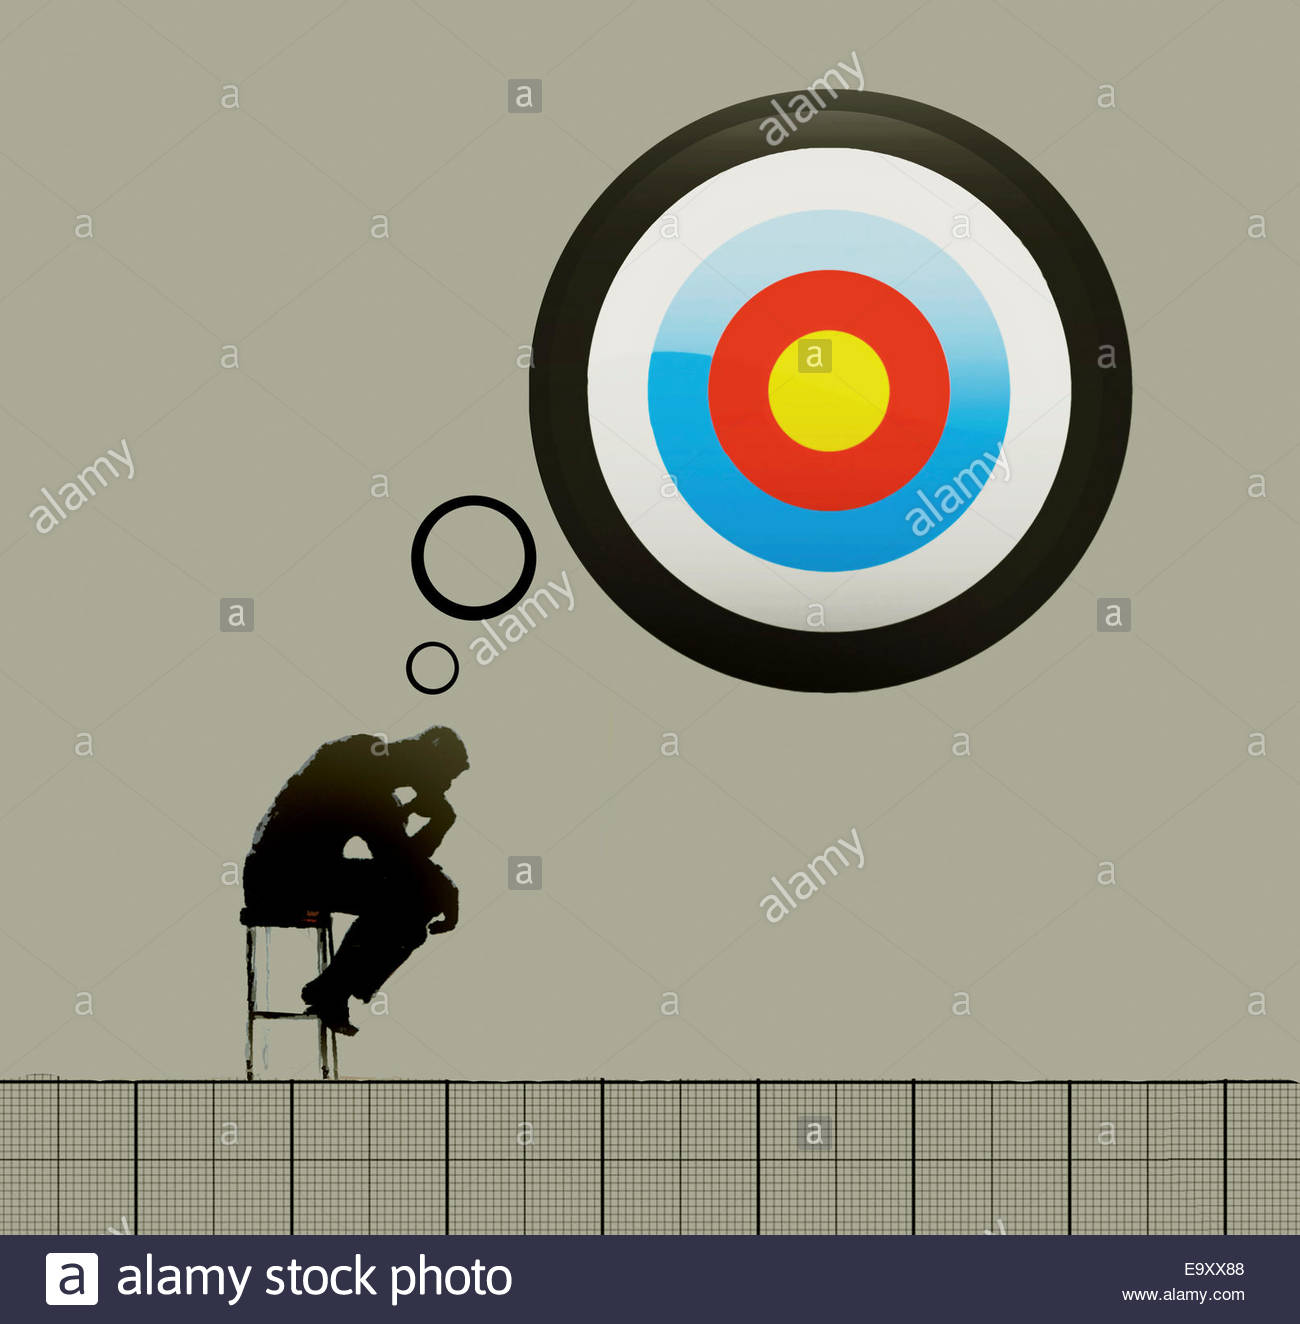 The Thinker with target thought bubble - Stock Image